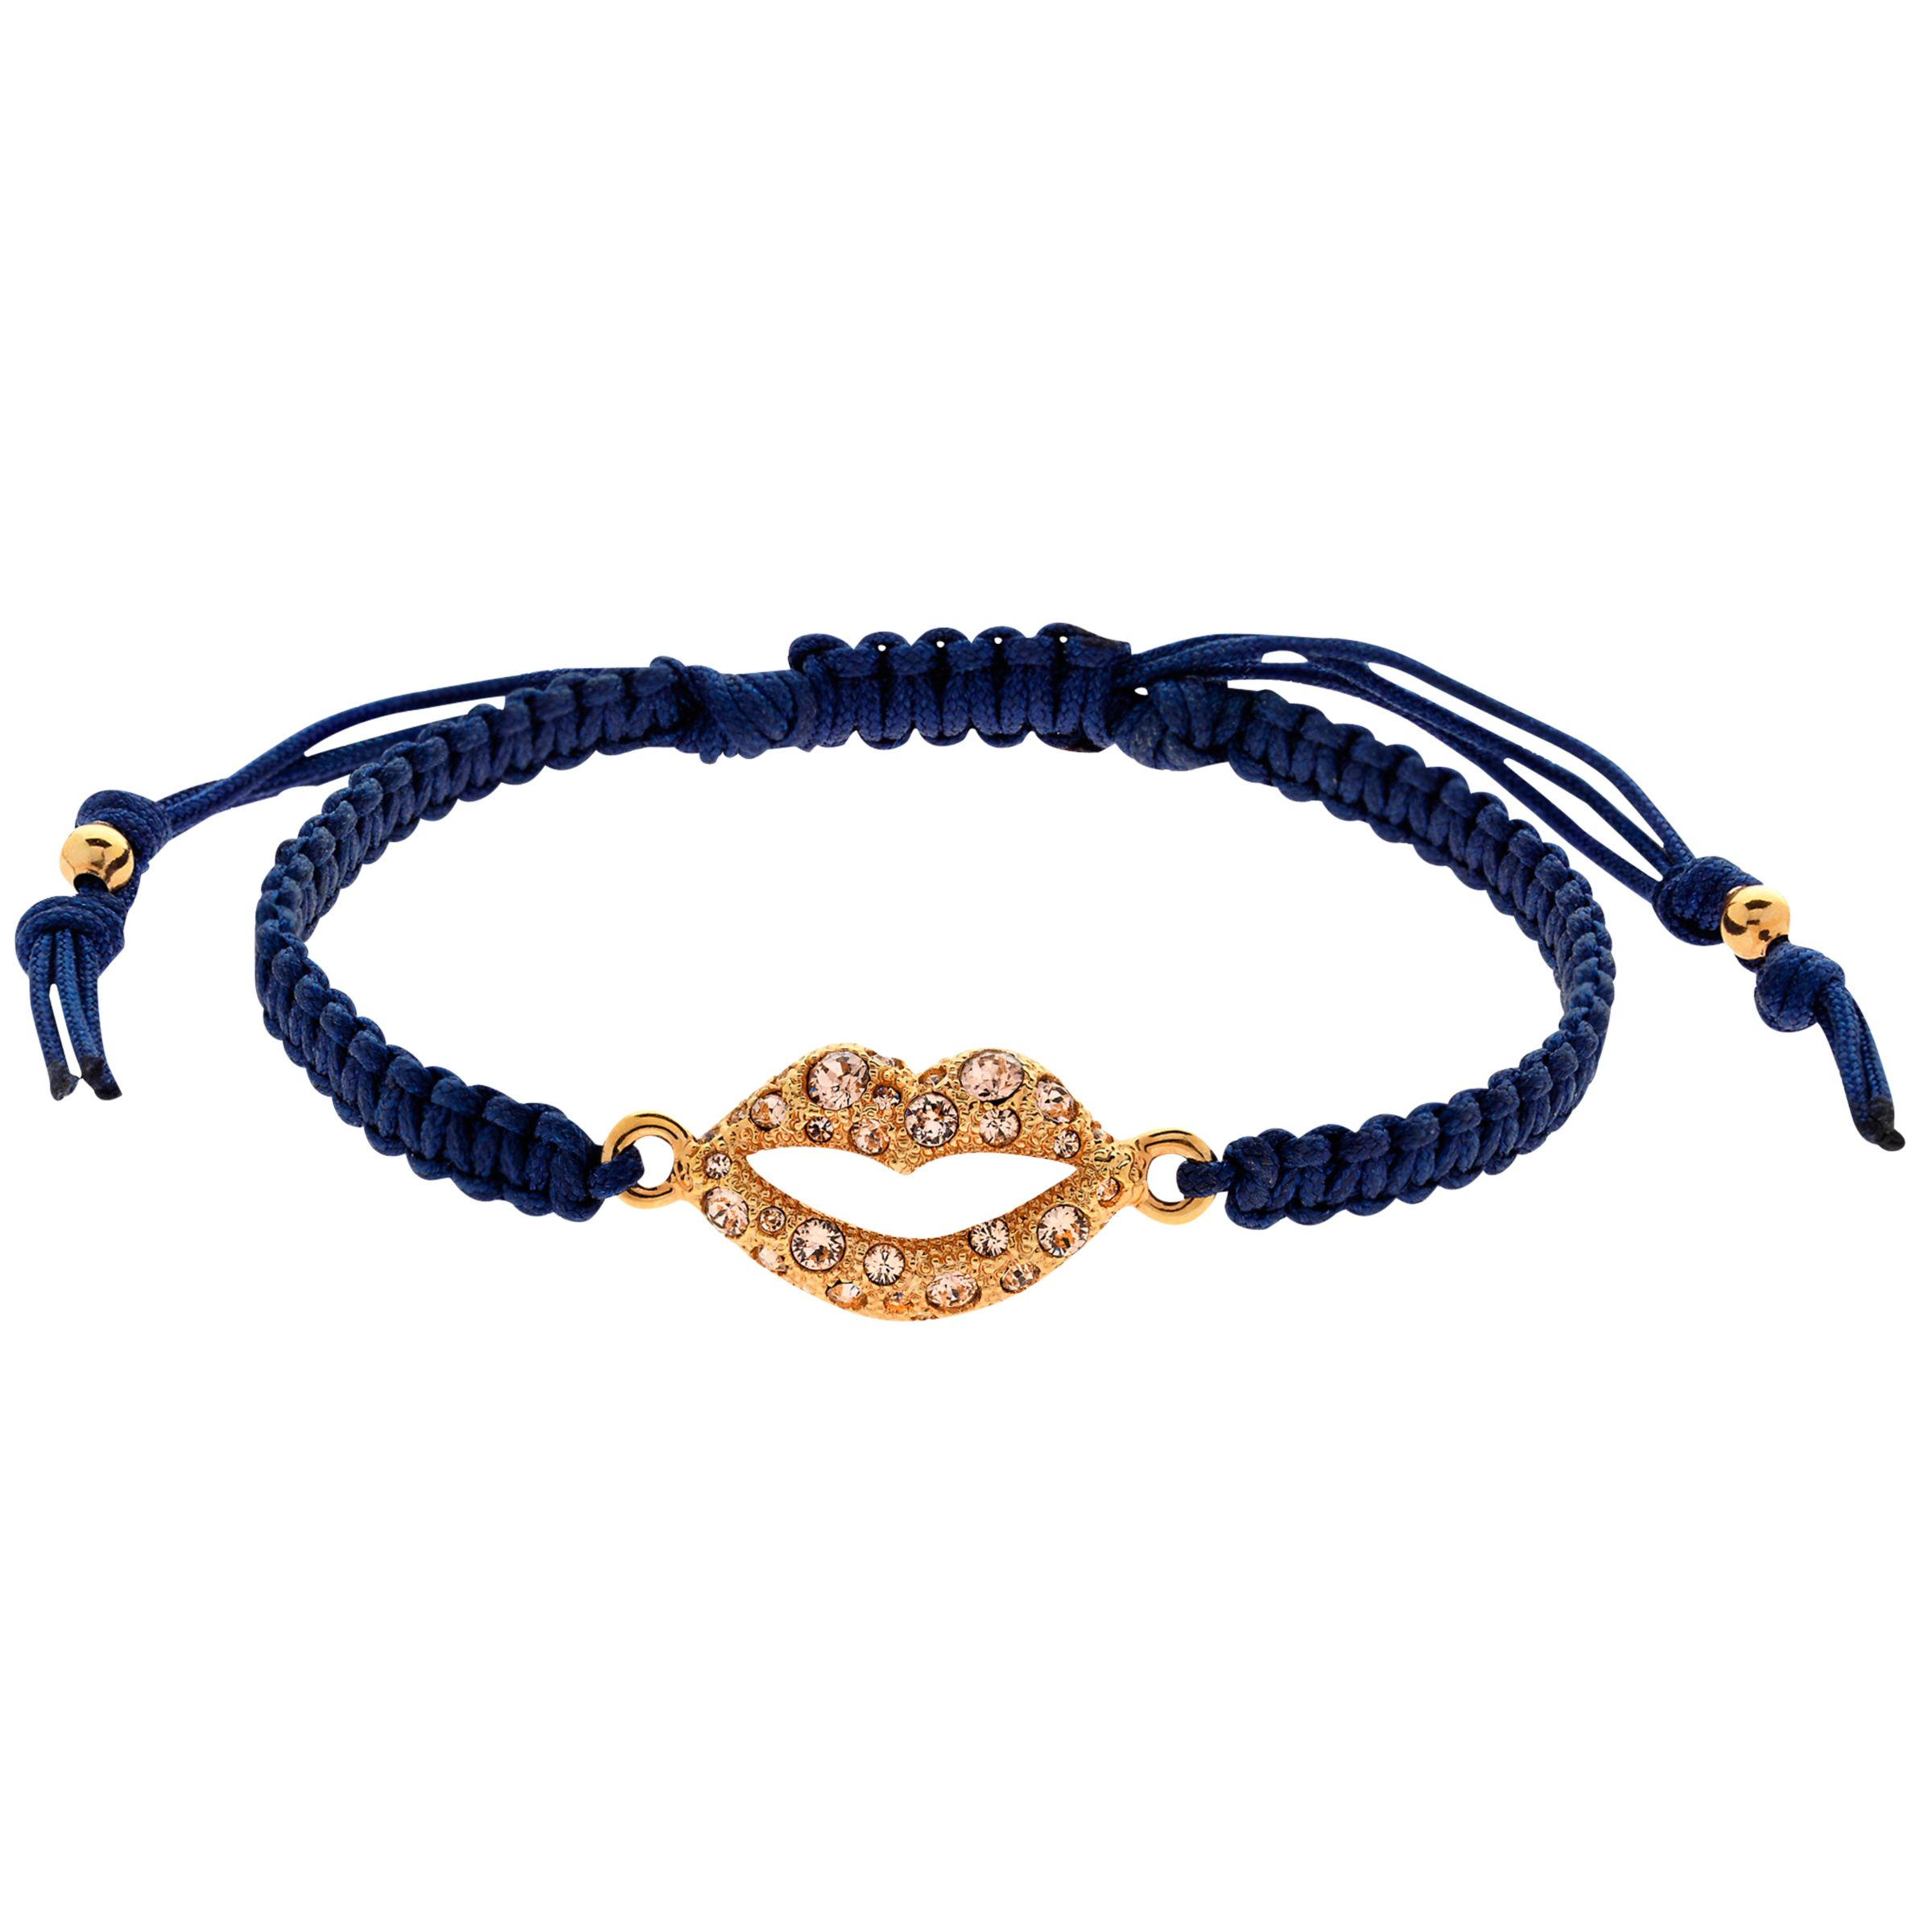 Cachet Cachet Swarovski Crystal Lips Friendship Bracelet, Navy/Gold